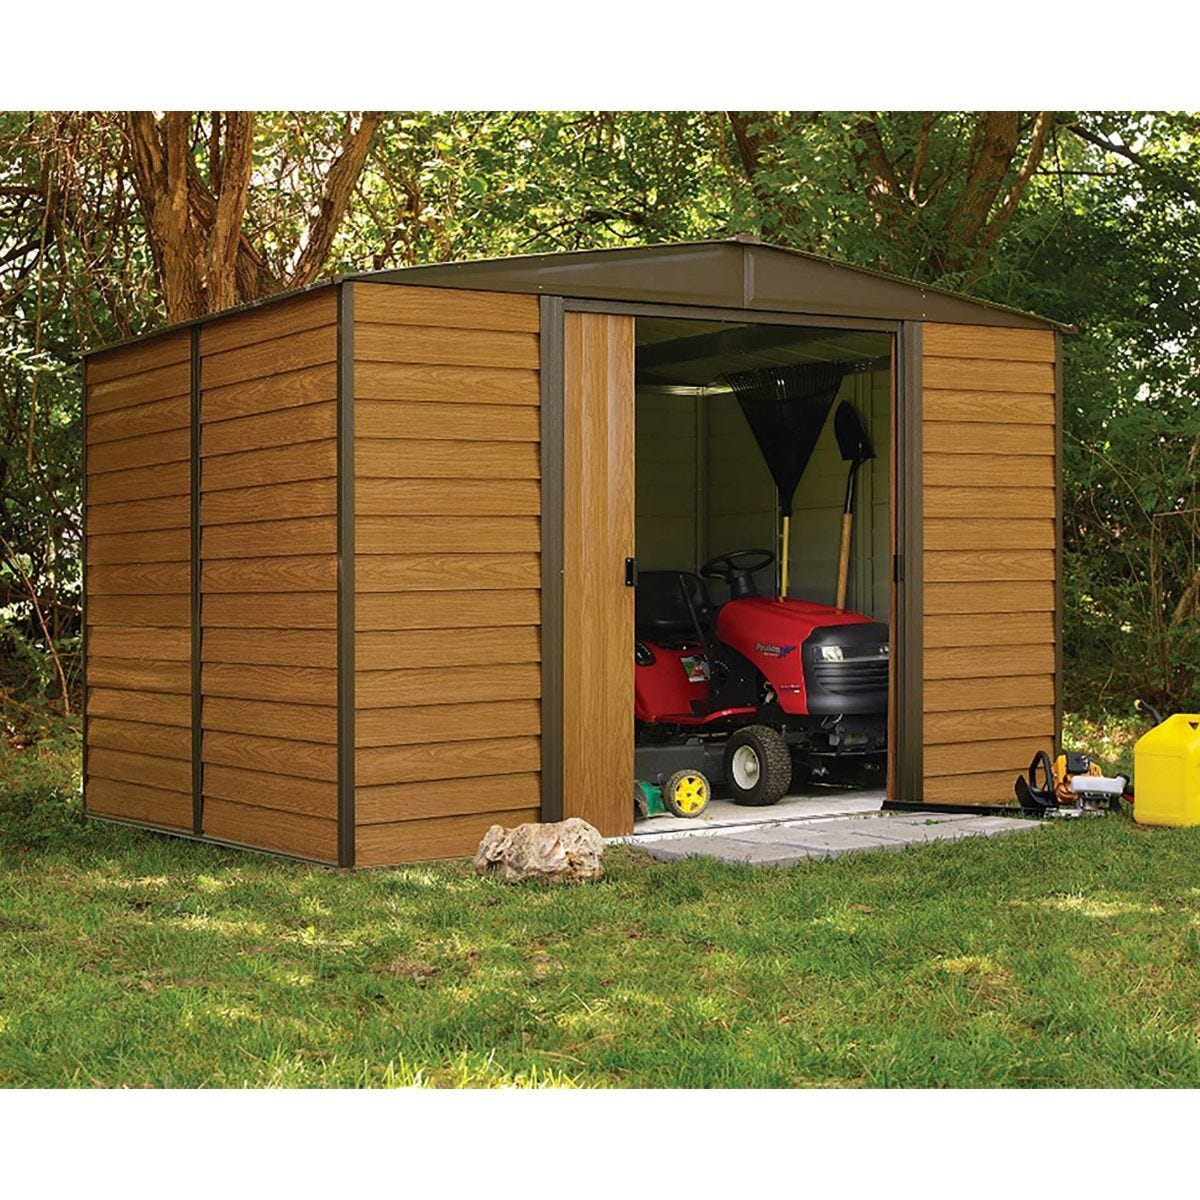 Rowlinson Woodvale Metal Garden Shed 10 x 8Ft